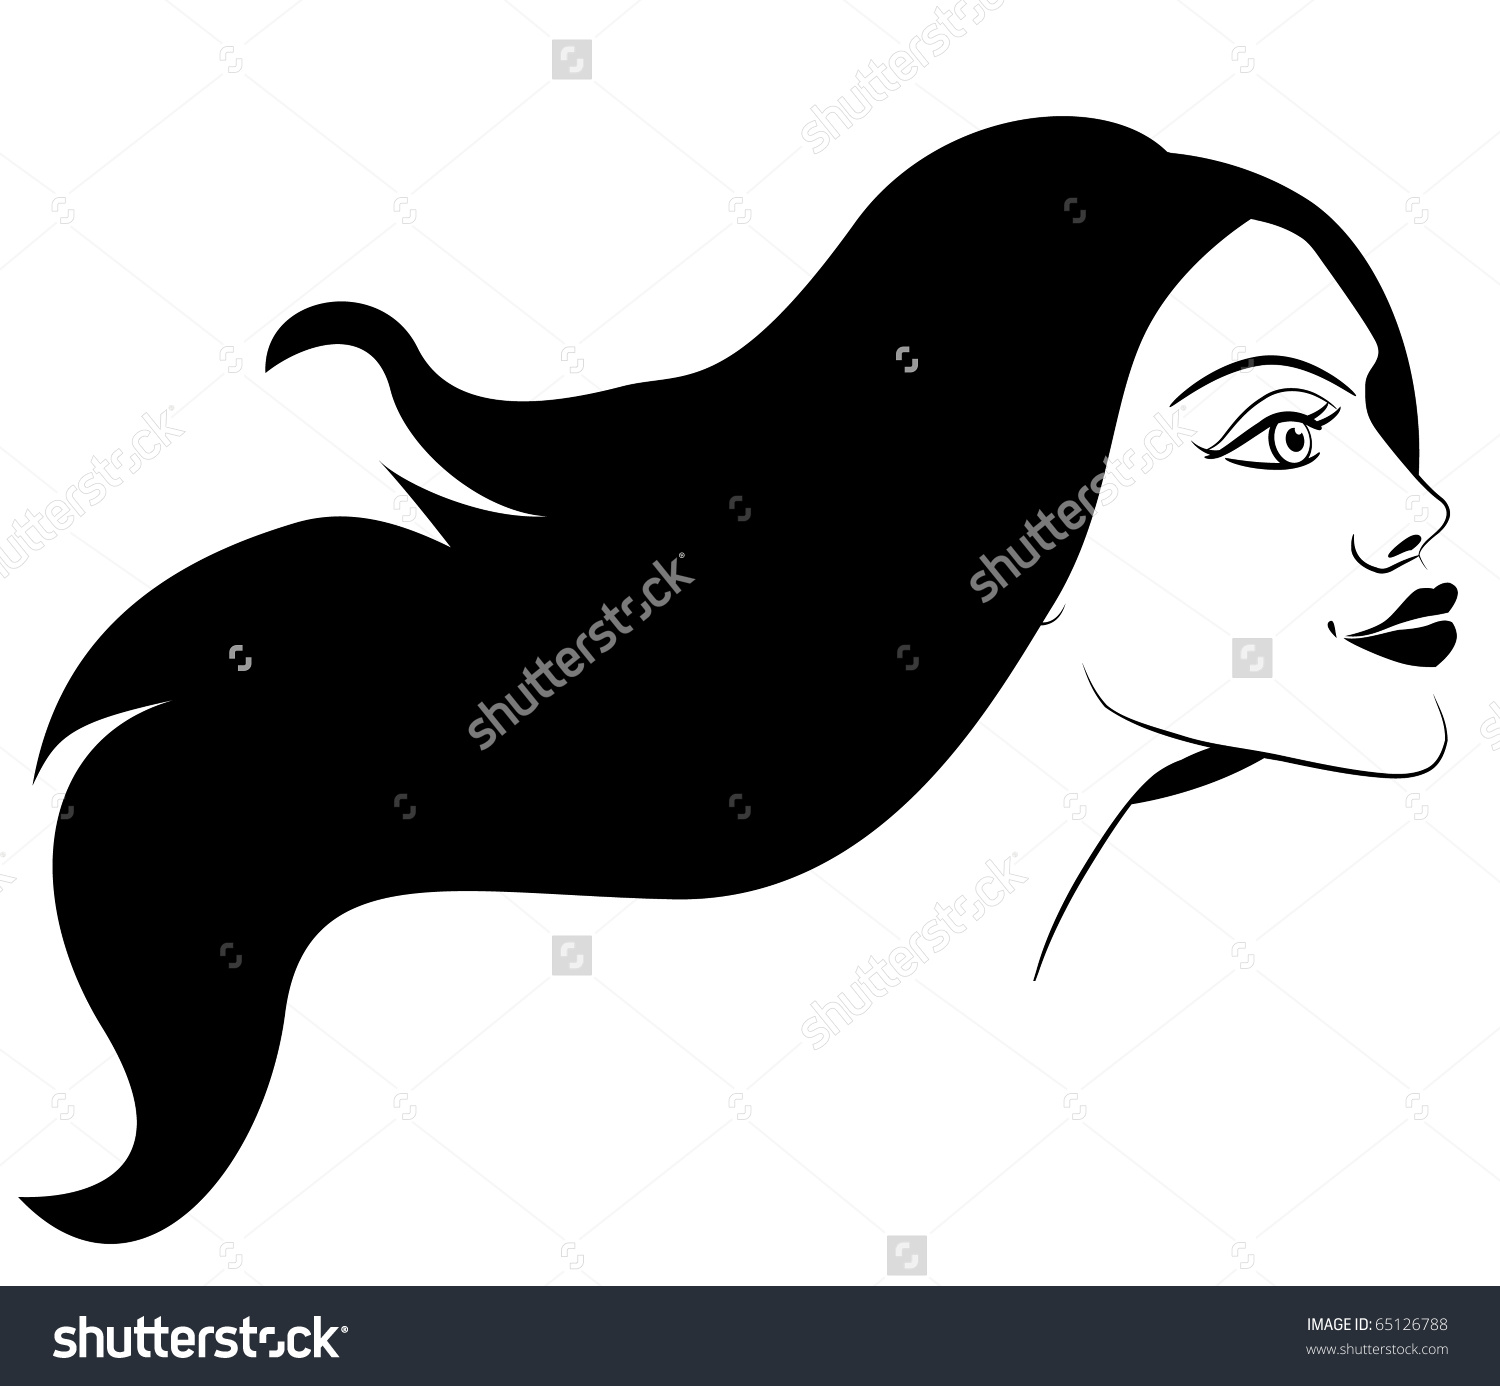 Woman side view face clipart png royalty free stock Side View Face Silhouette Clip Art (48 ) - Free Clipart png royalty free stock